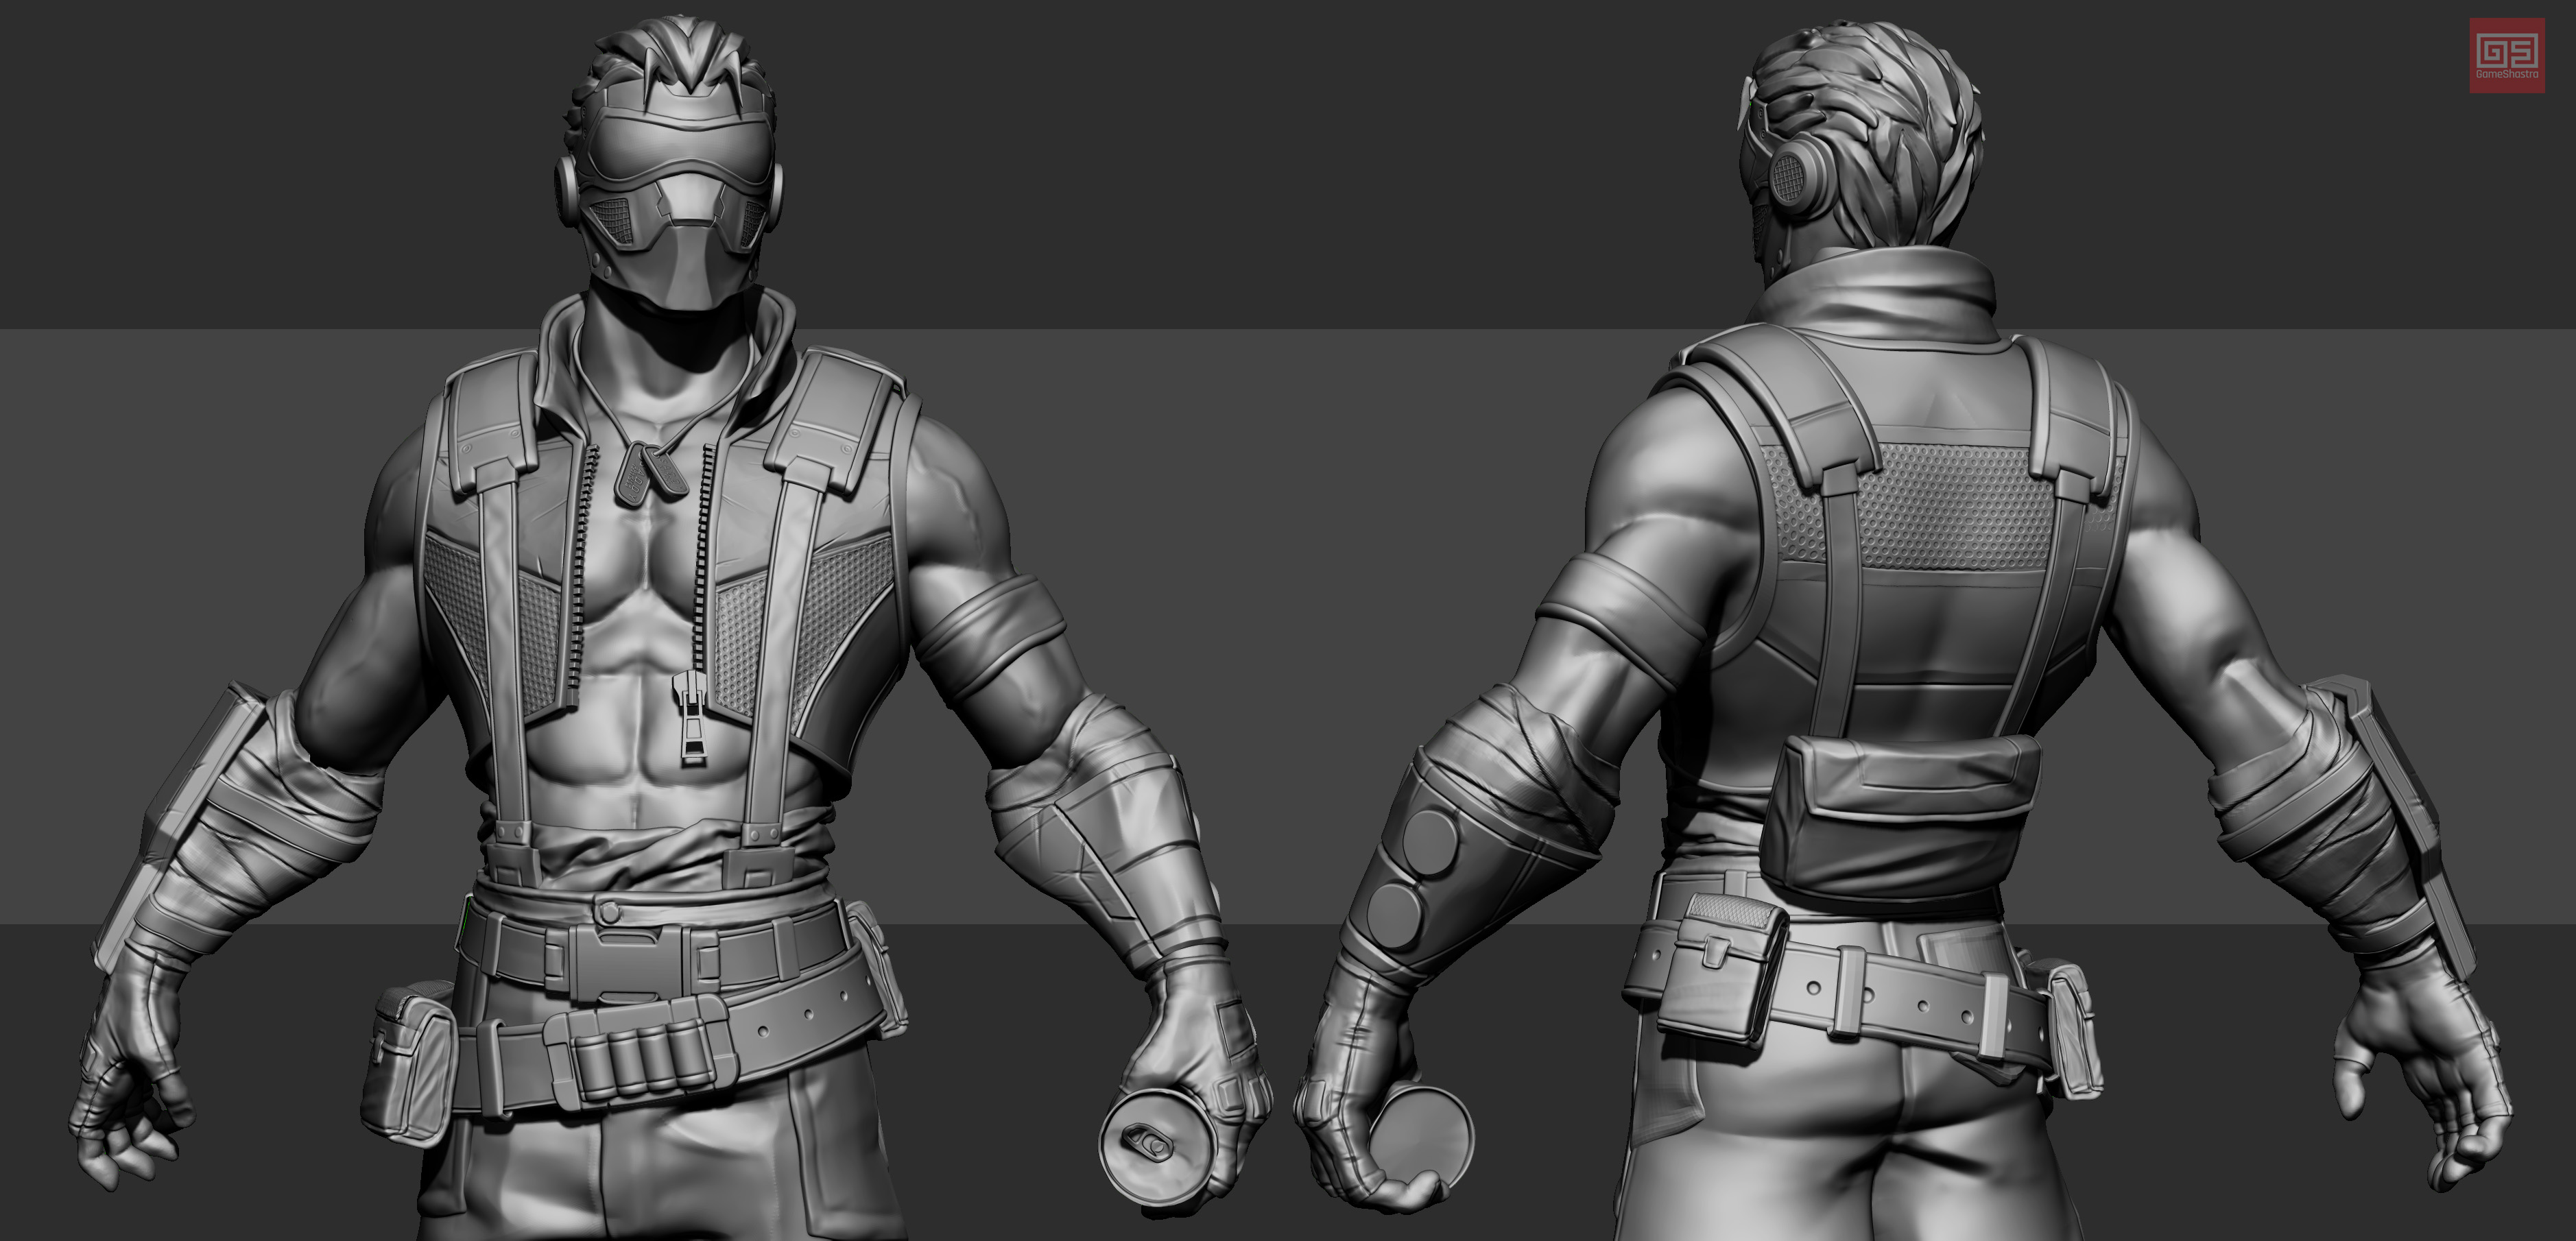 soldier69_zbrushcentral.jpg